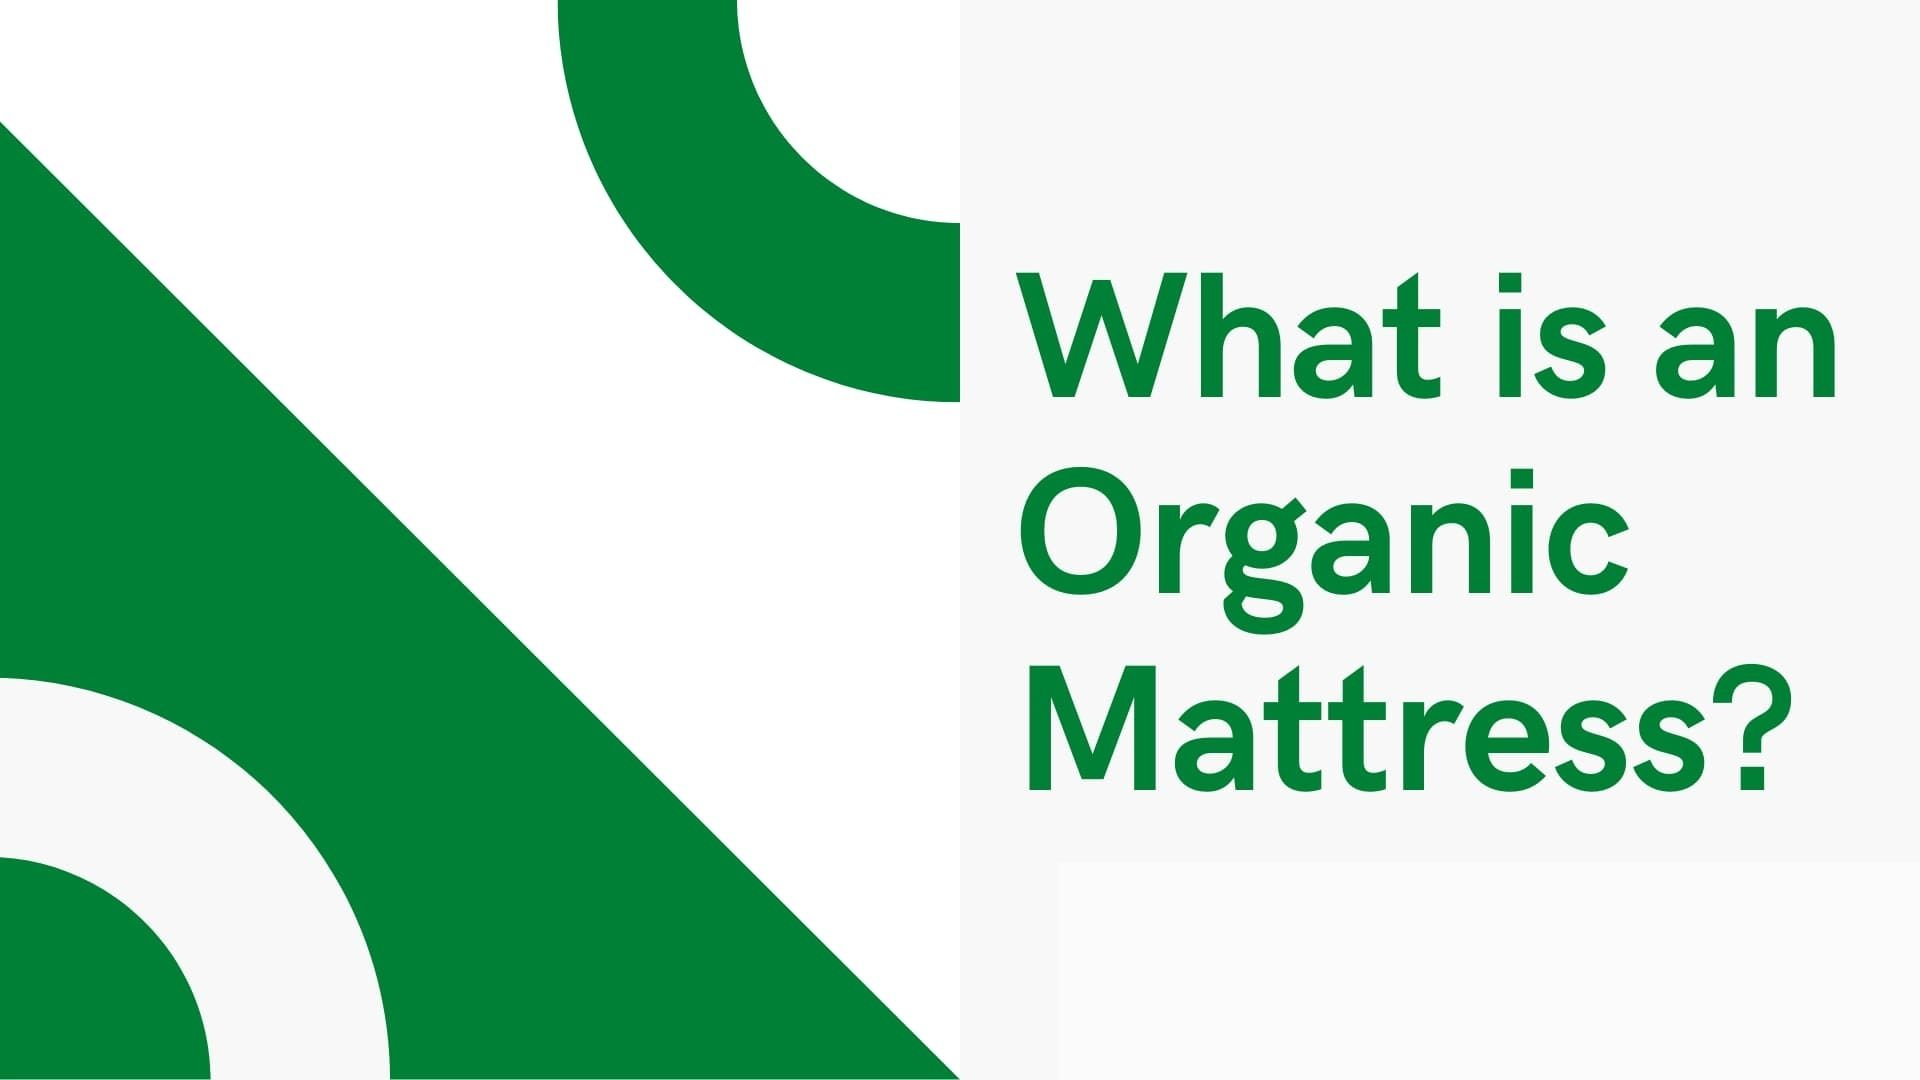 What is an eco-friendly mattress